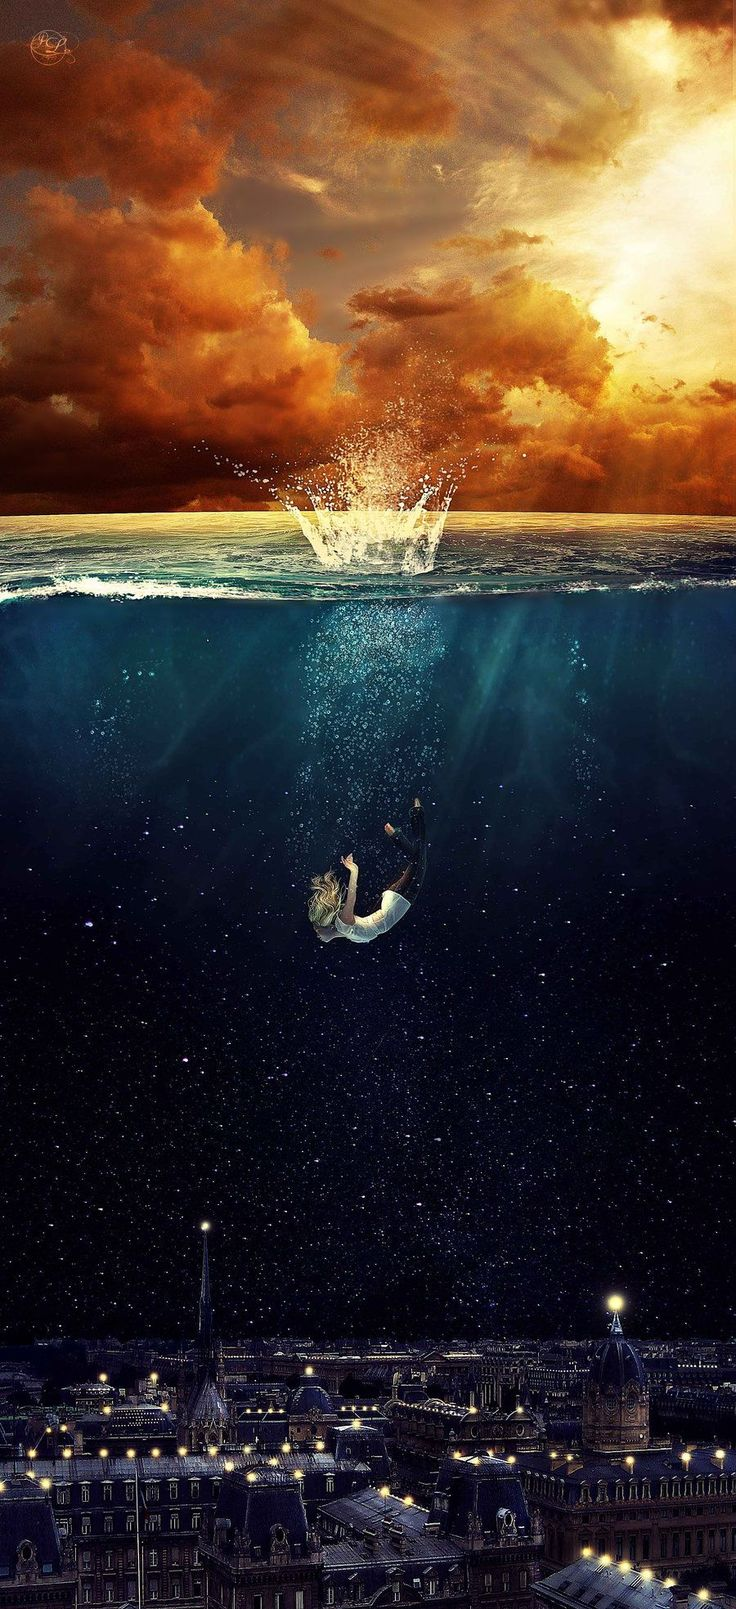 Photomanipulation. Usually don't like them but this one is good! Our Ends Are Beginnings by ParadisiacPicture.deviantart.com